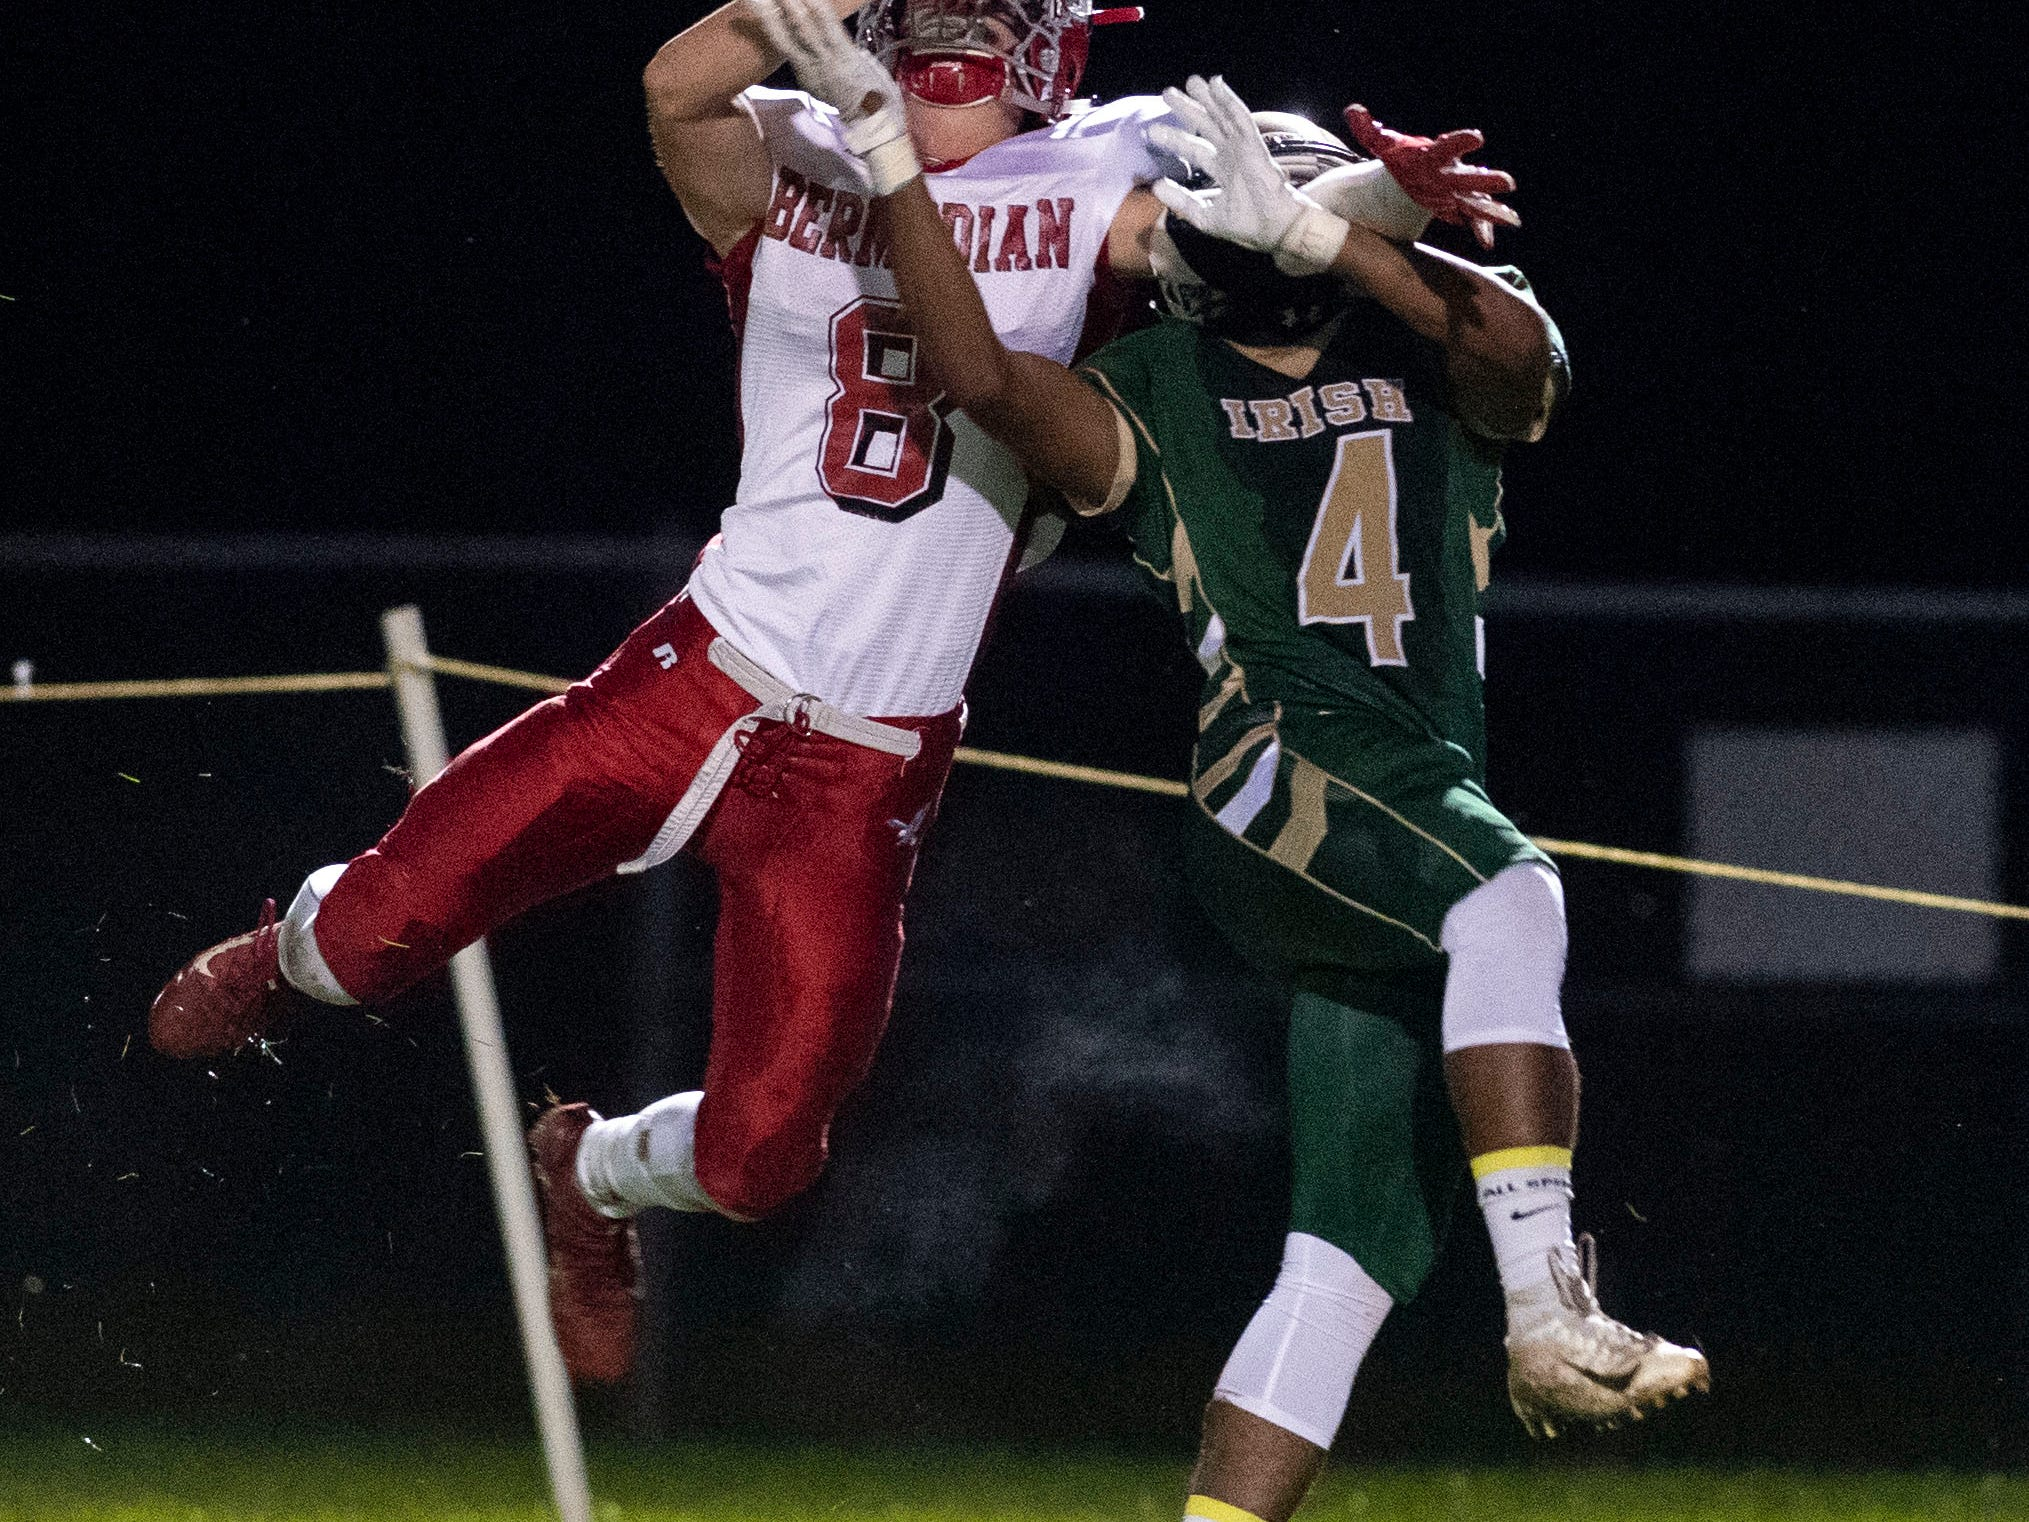 Bermudian Springs' Chase McMillan (8) and York Catholic's Tyrese Murray (4) go up for a pass from Eagles' quarterback Chase Dull during a Division III football game on September 28, 2018. York Catholic (6-0) beat the Bermudian Springs Eagles (4-2) 10-7, during the Fighting Irish's homecoming.